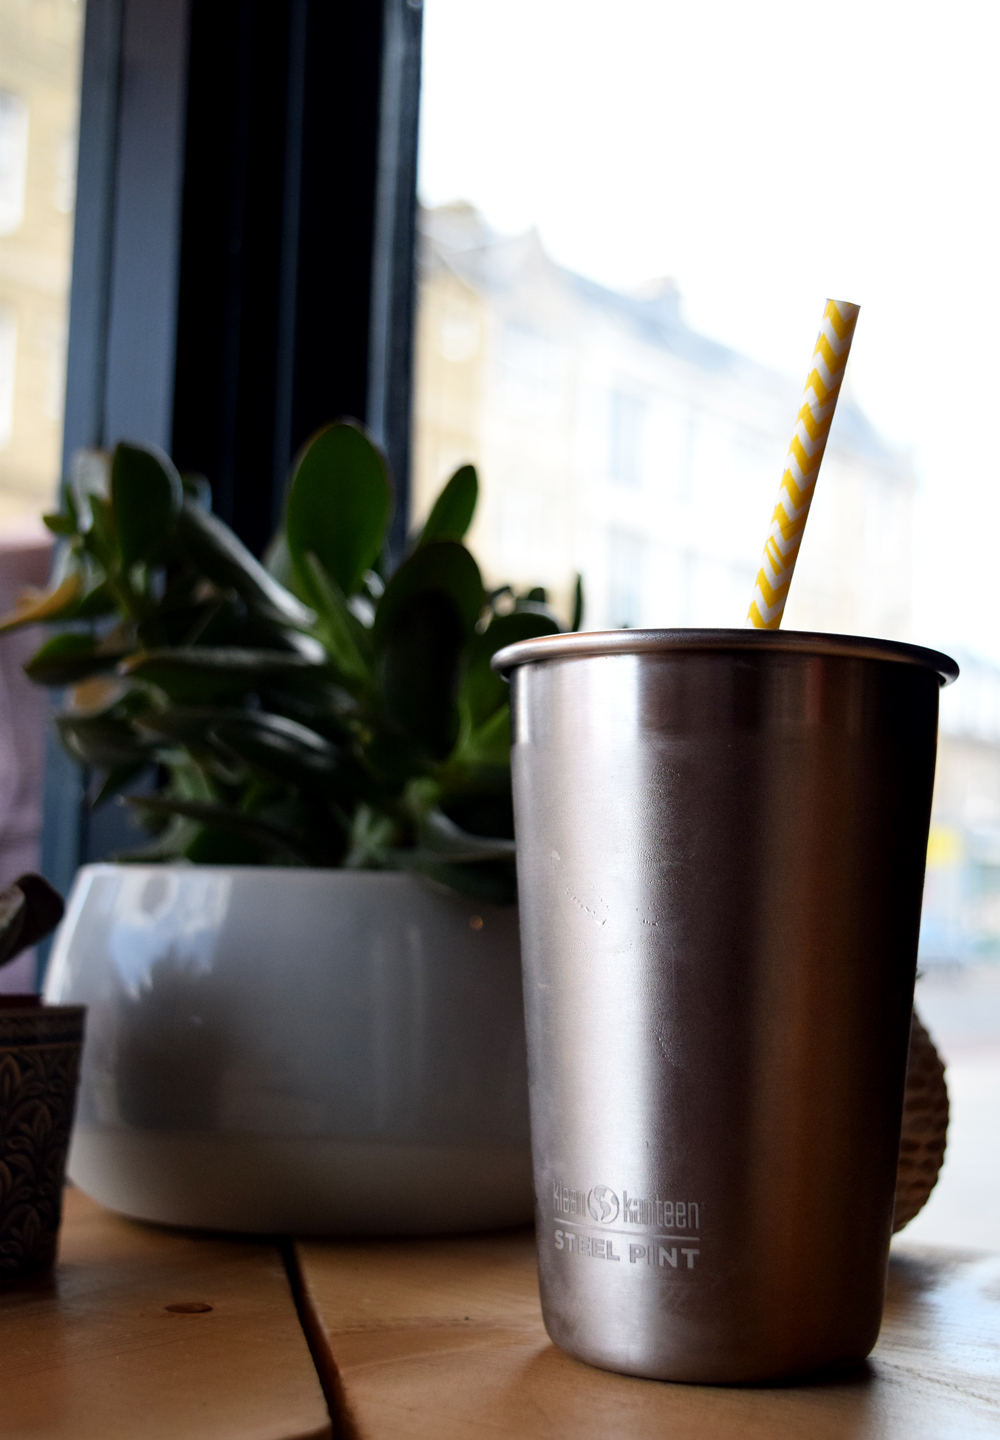 Klean Kanteen reusable cup in action with a fun paper straw.